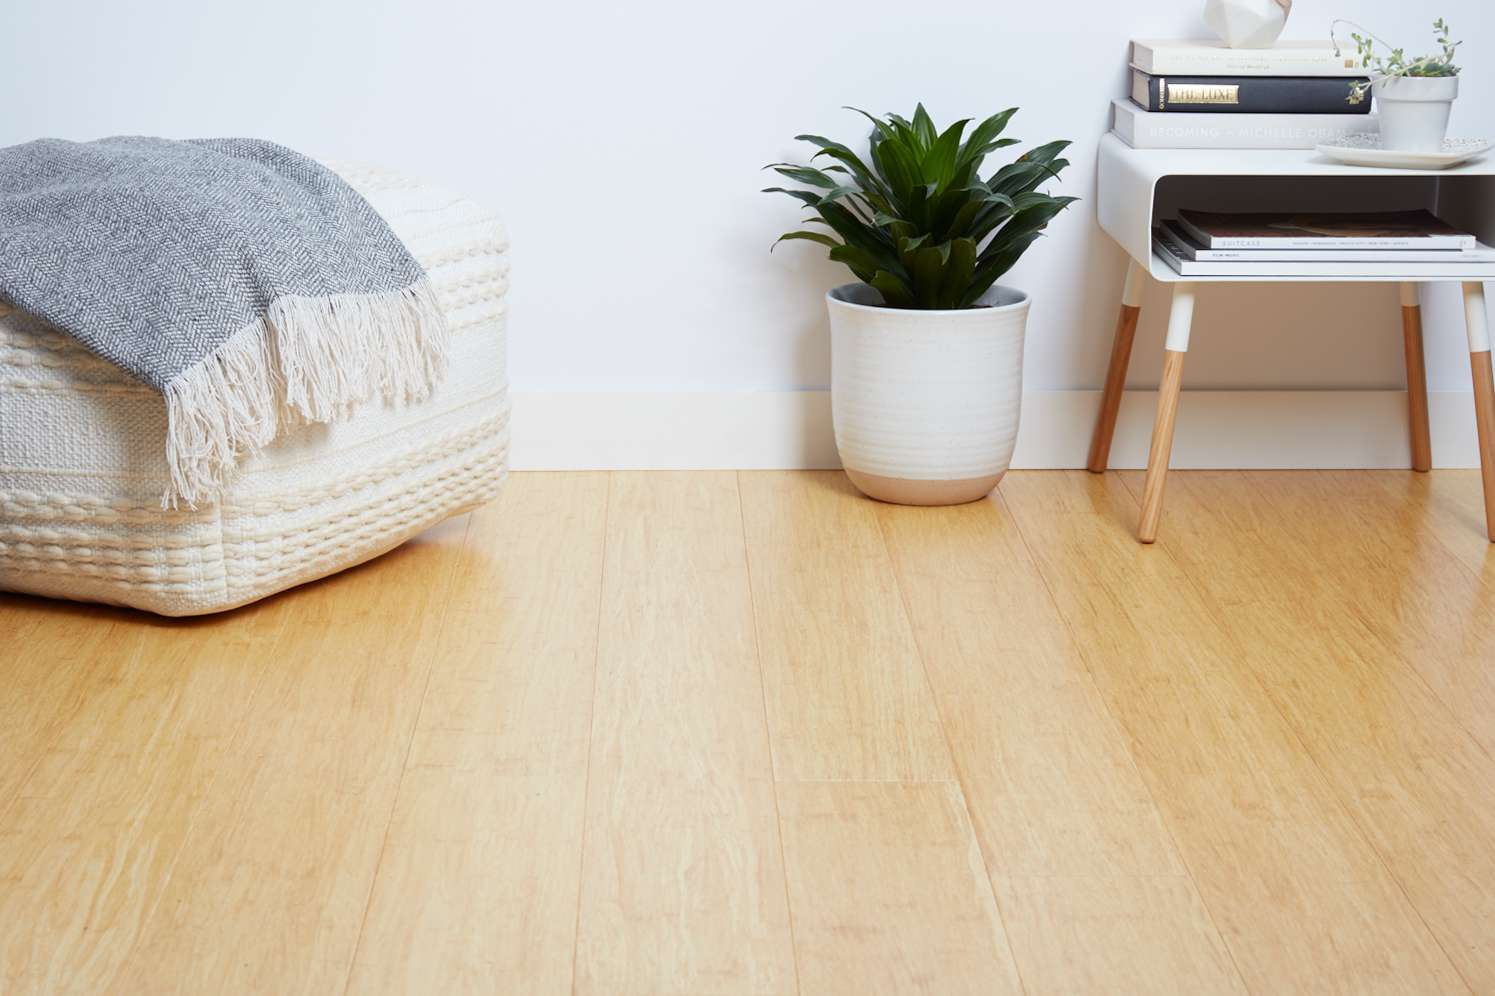 Best Flooring Options for the Bedroom